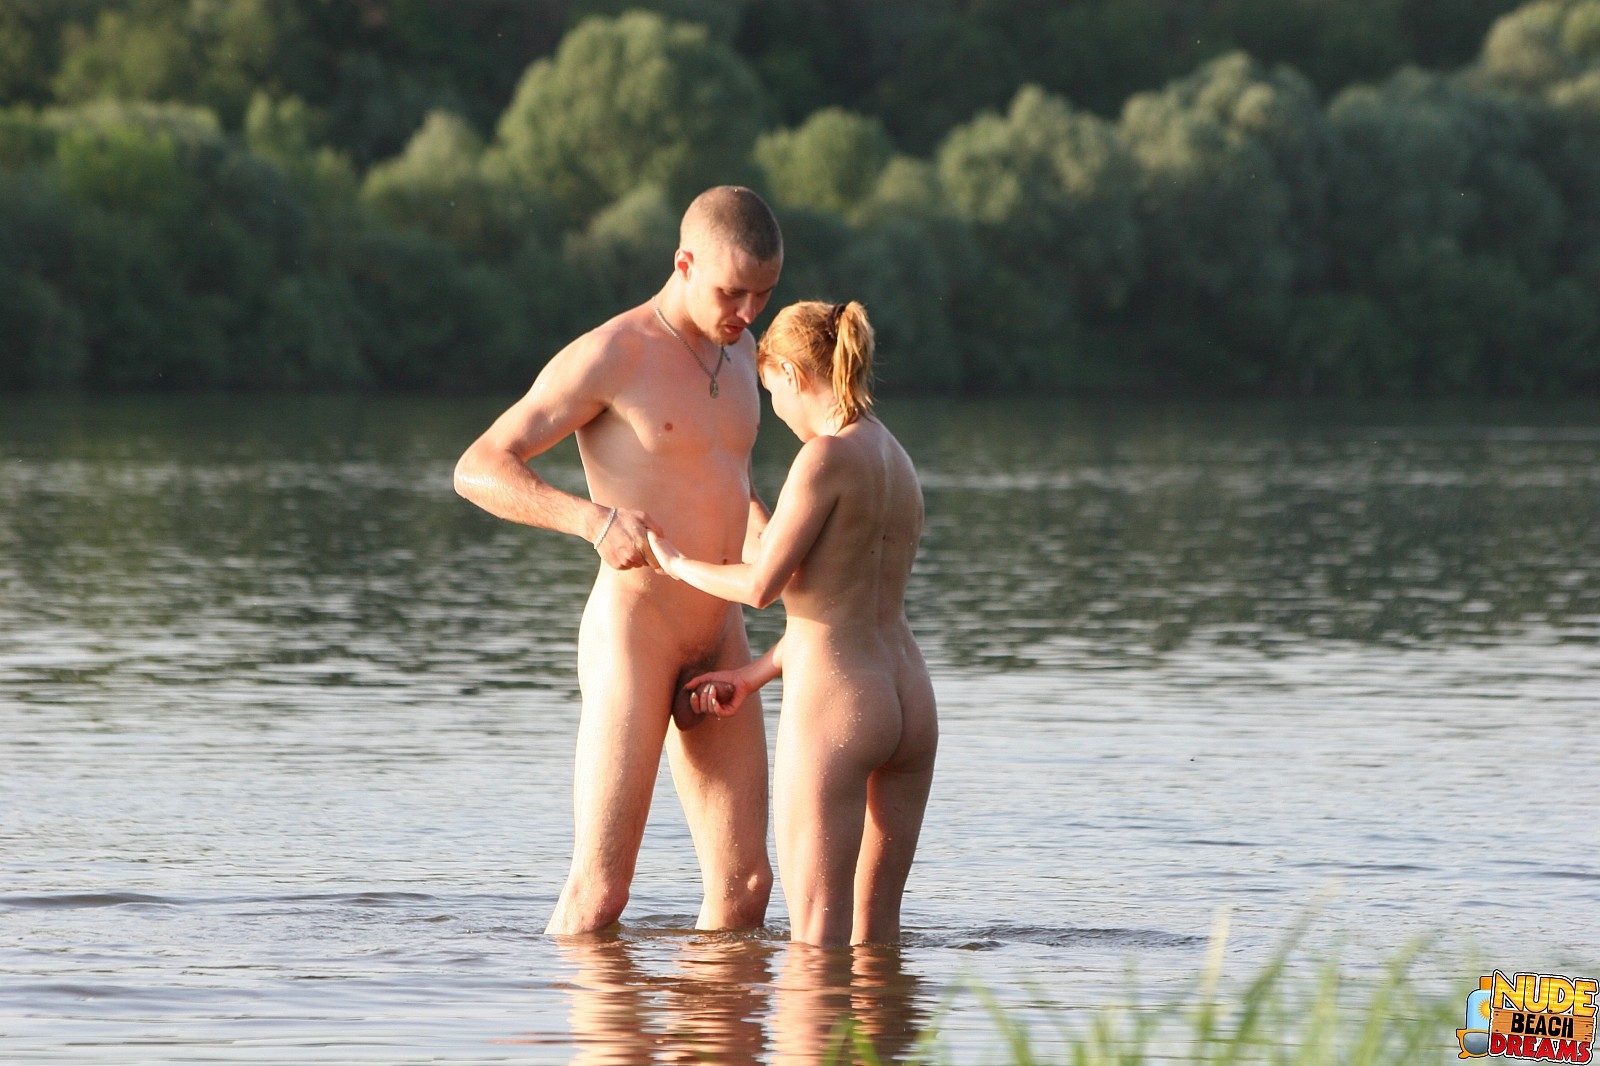 Brother sister nude night pictures exploited photo